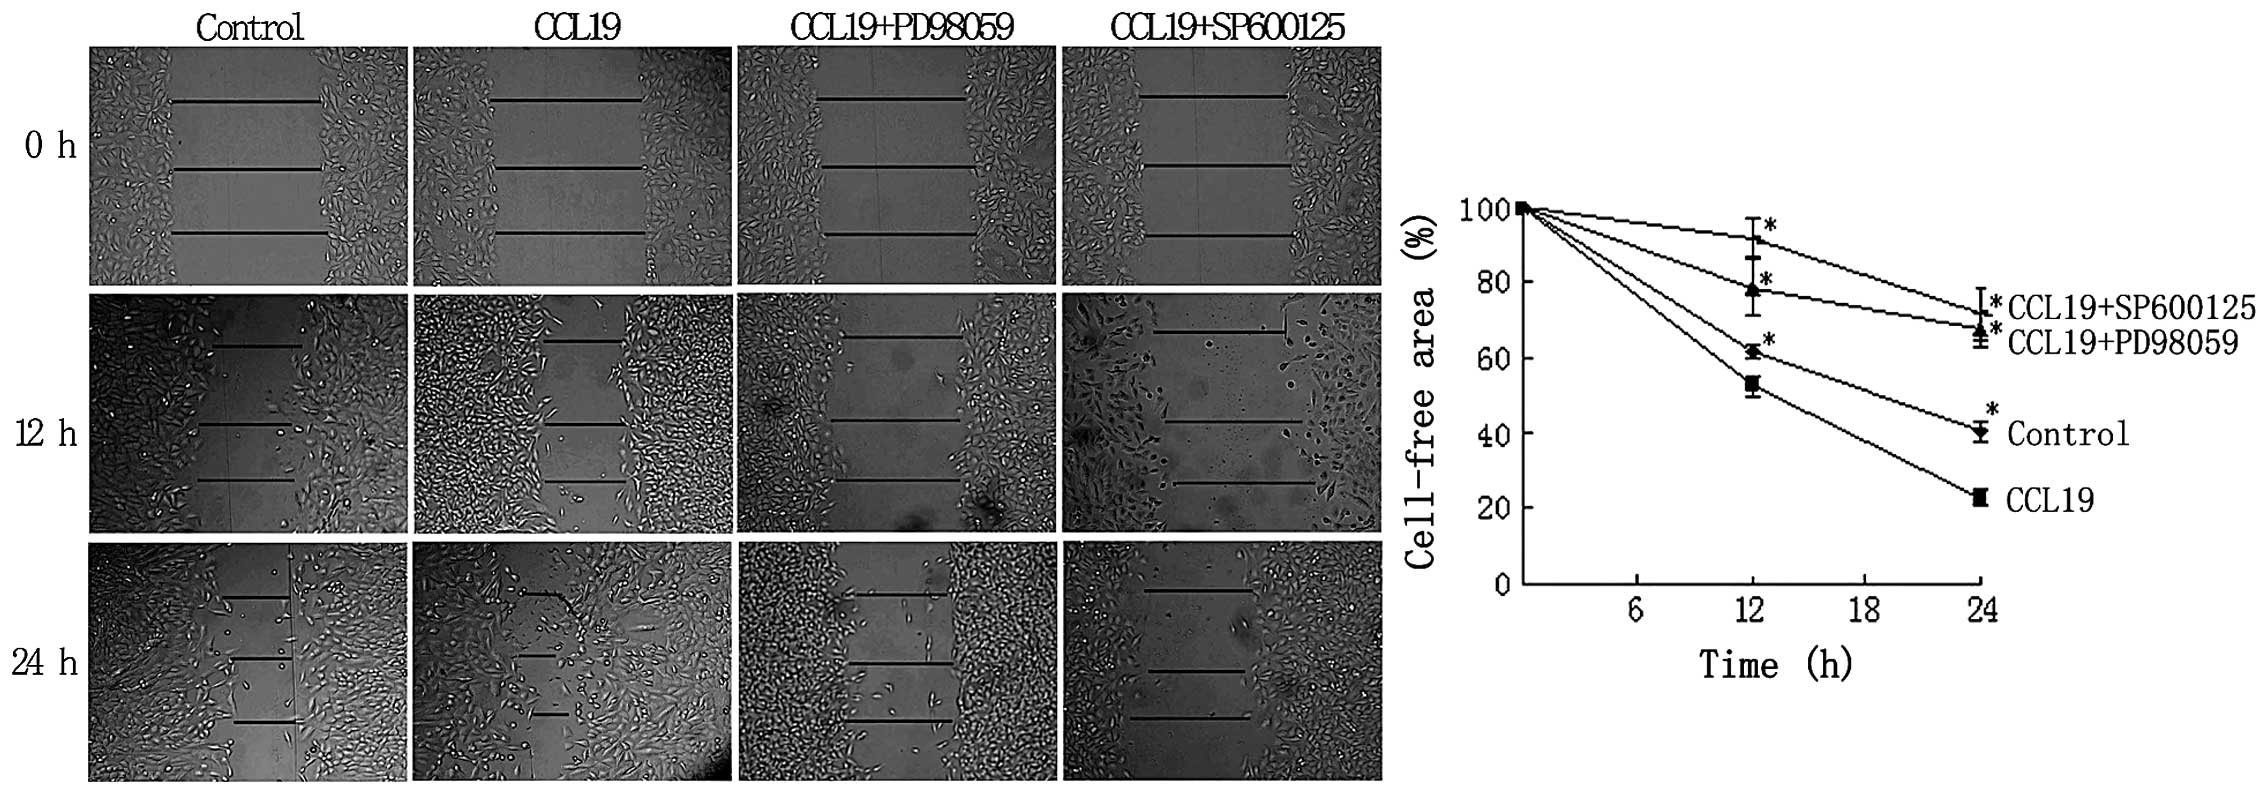 CCR7 regulates cell migration and invasion through MAPKs in ...